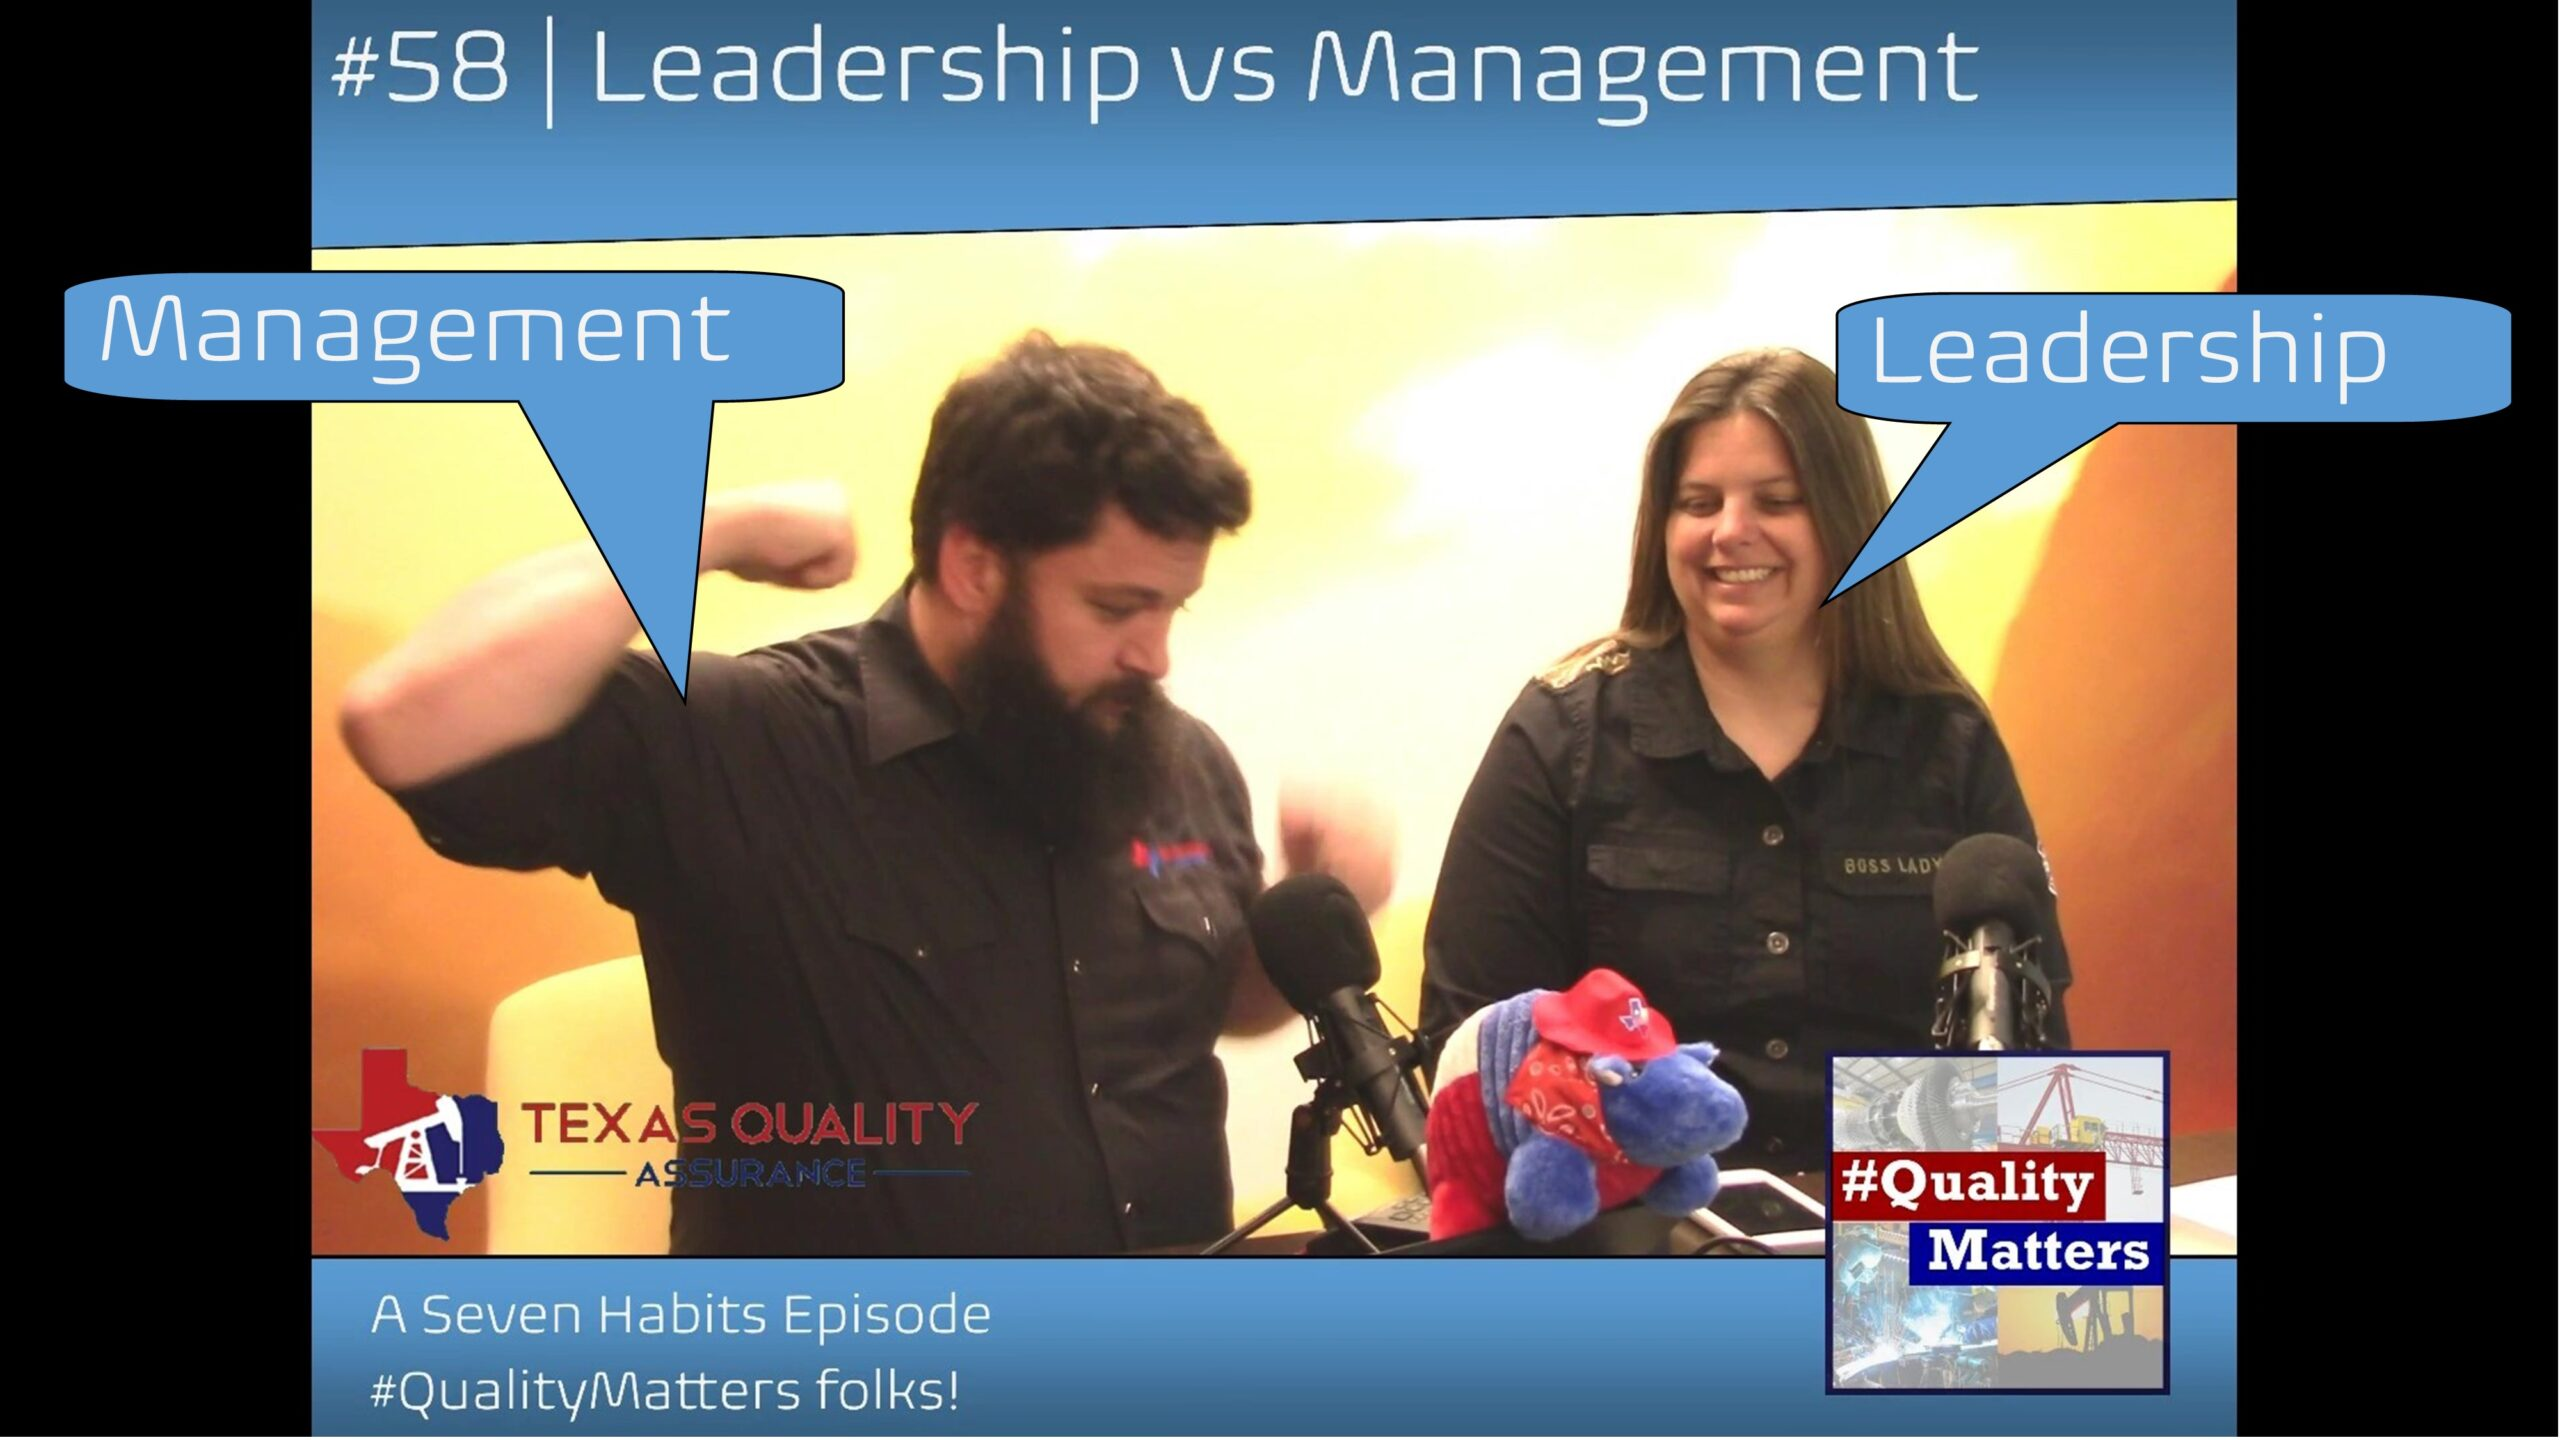 Leadership vs Management - Seven Habits